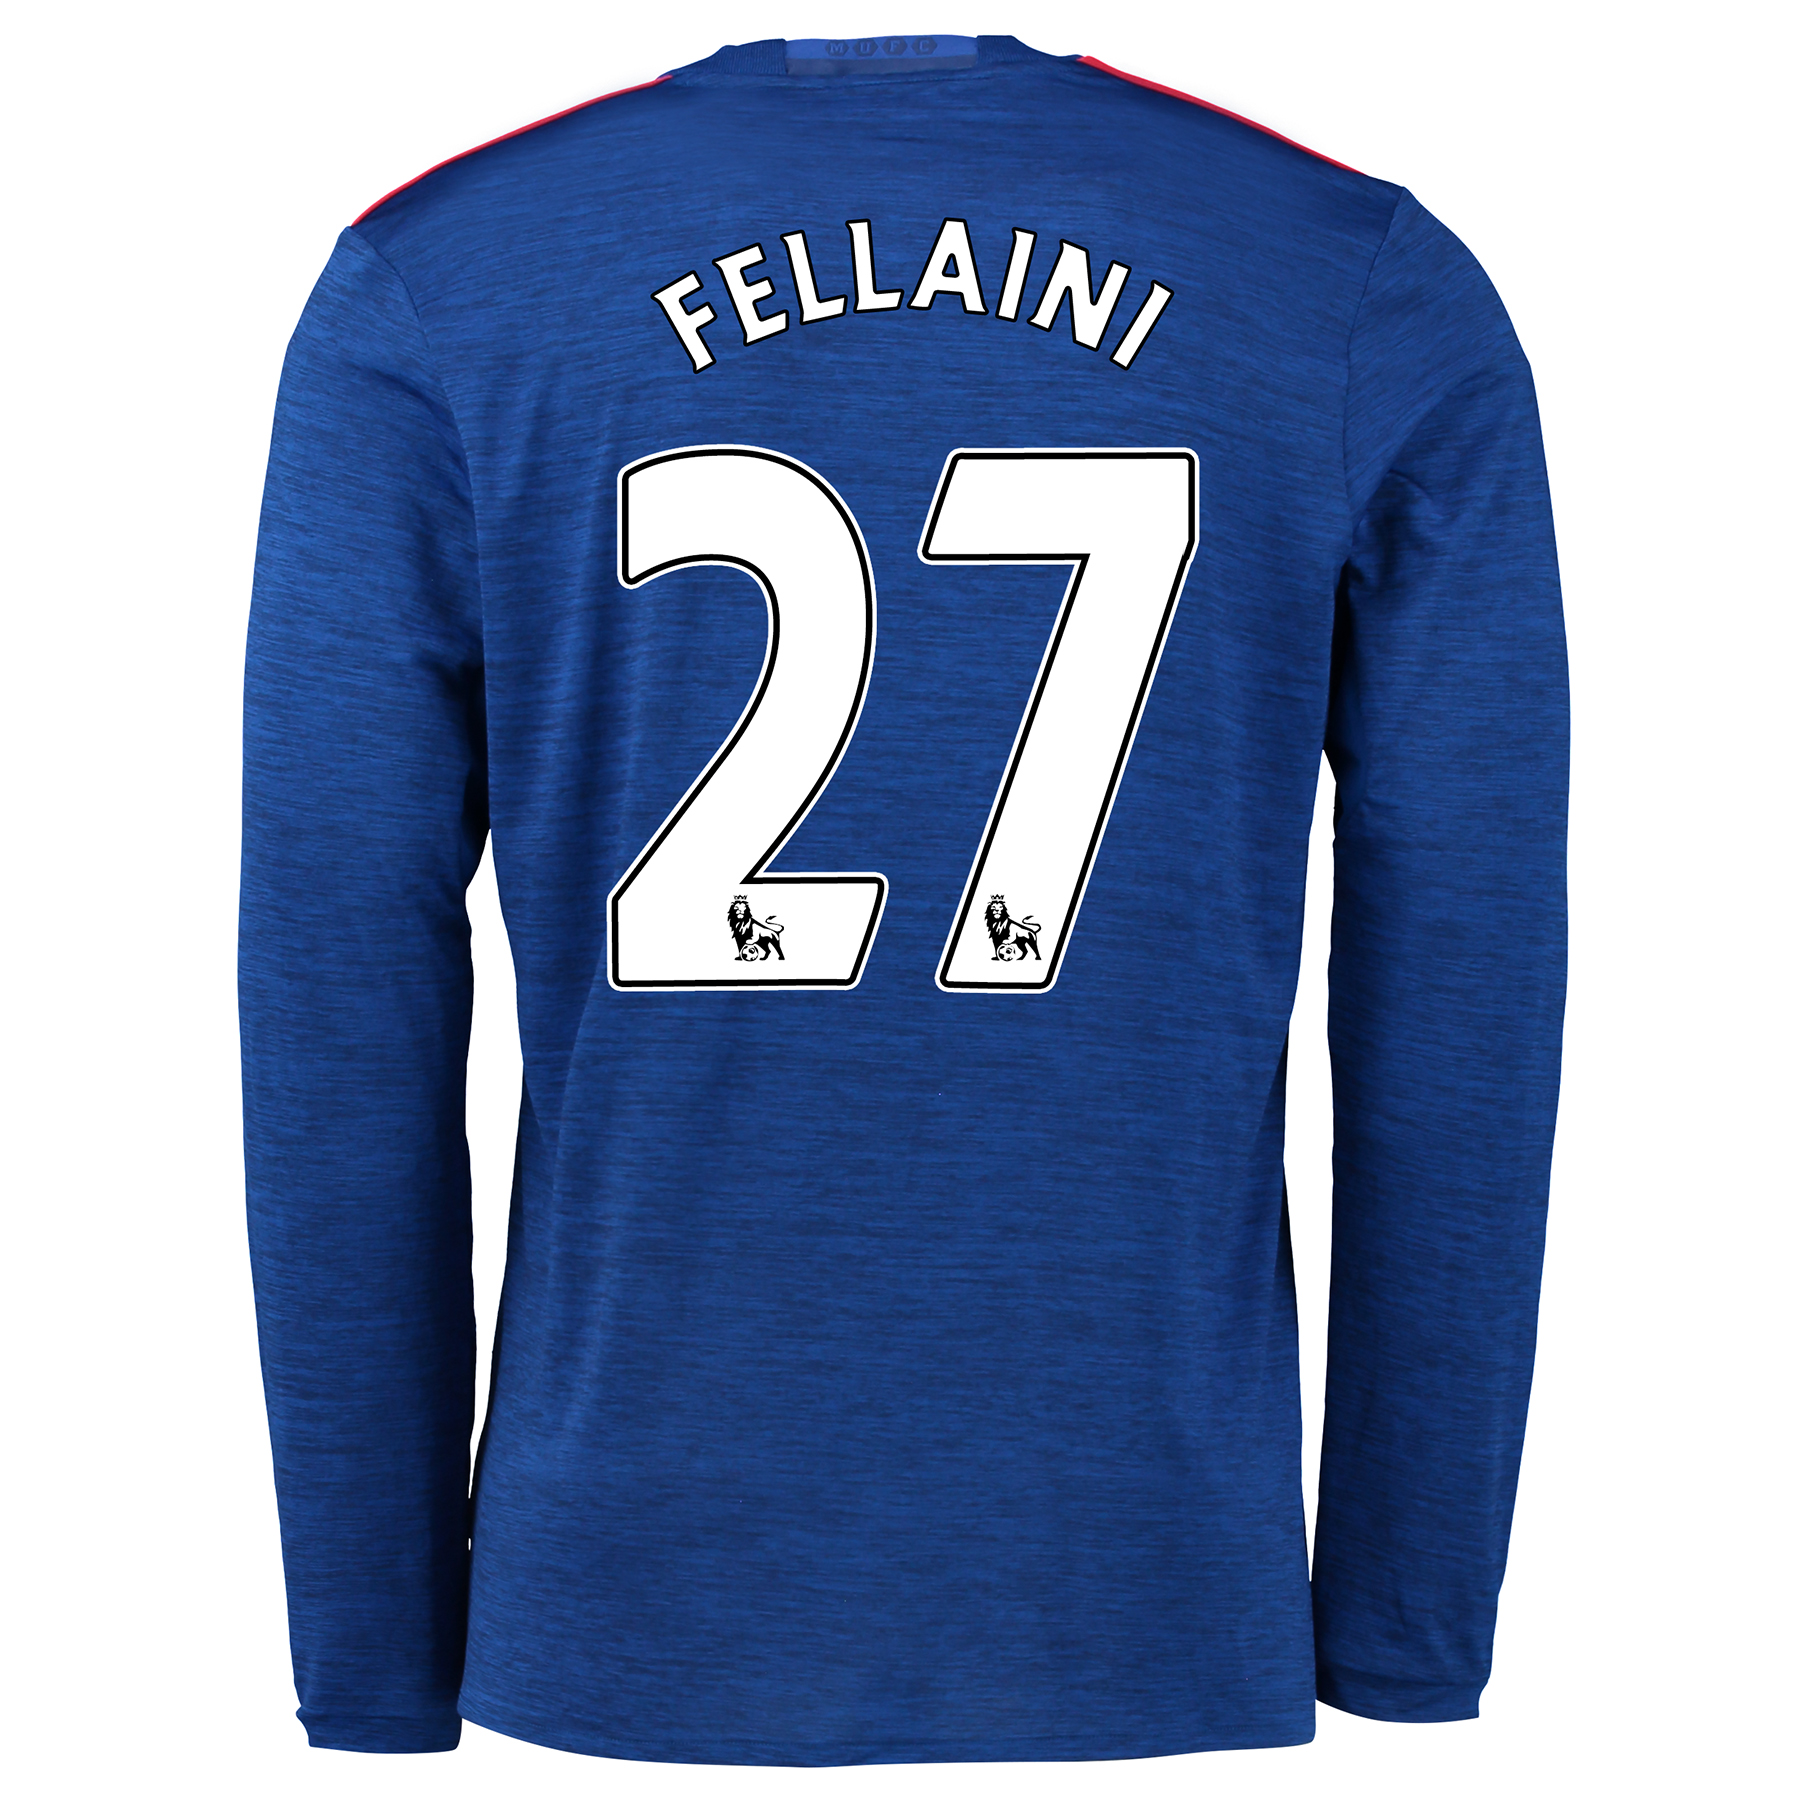 Manchester United Away Shirt 2016-17 - Long Sleeve with Fellaini 27 pr